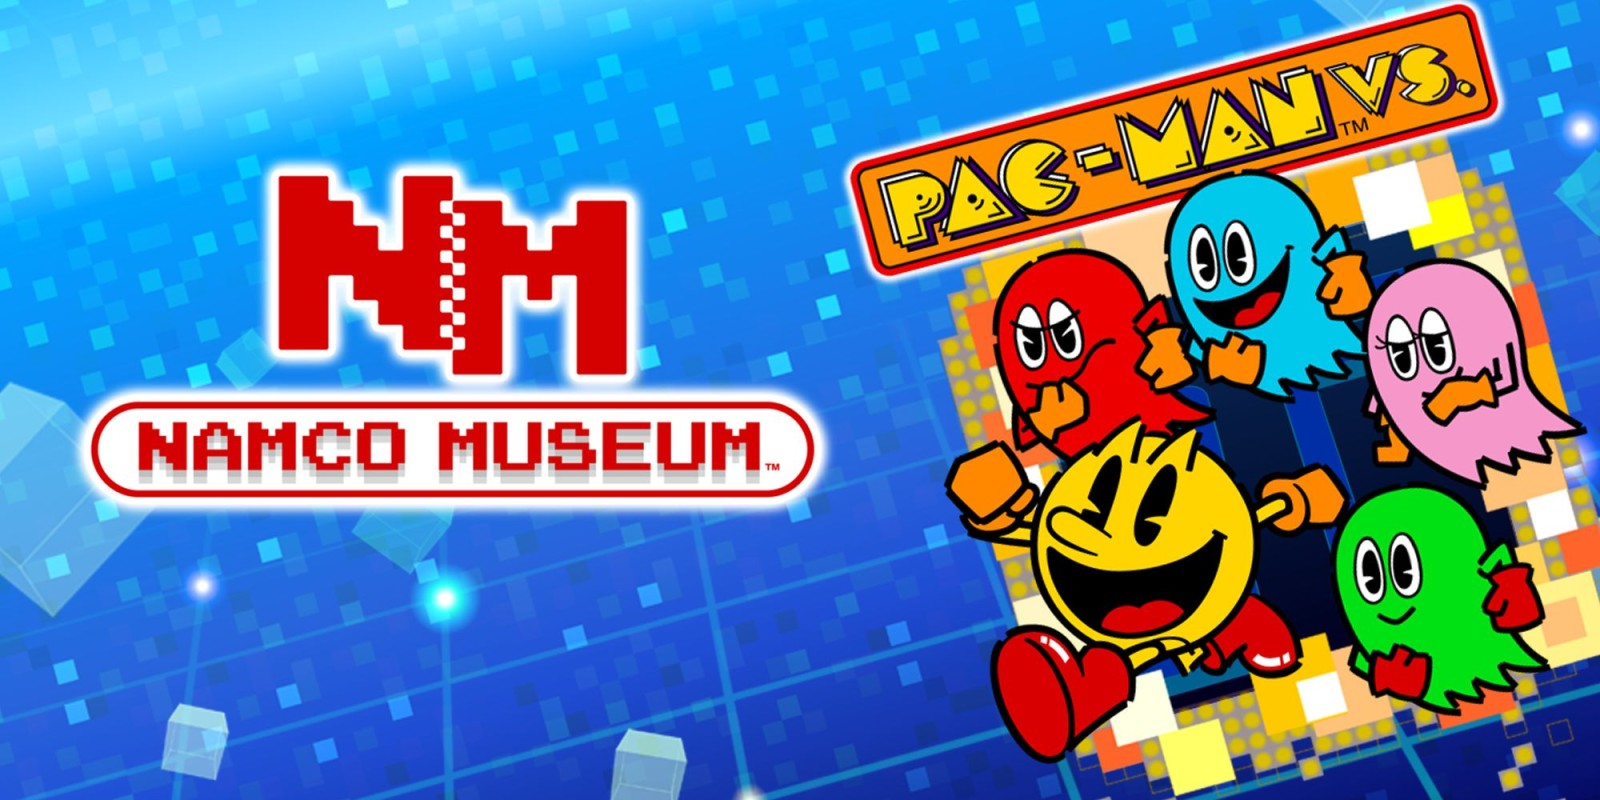 PAC-MAN VS. Gratis Multiplayer-Version